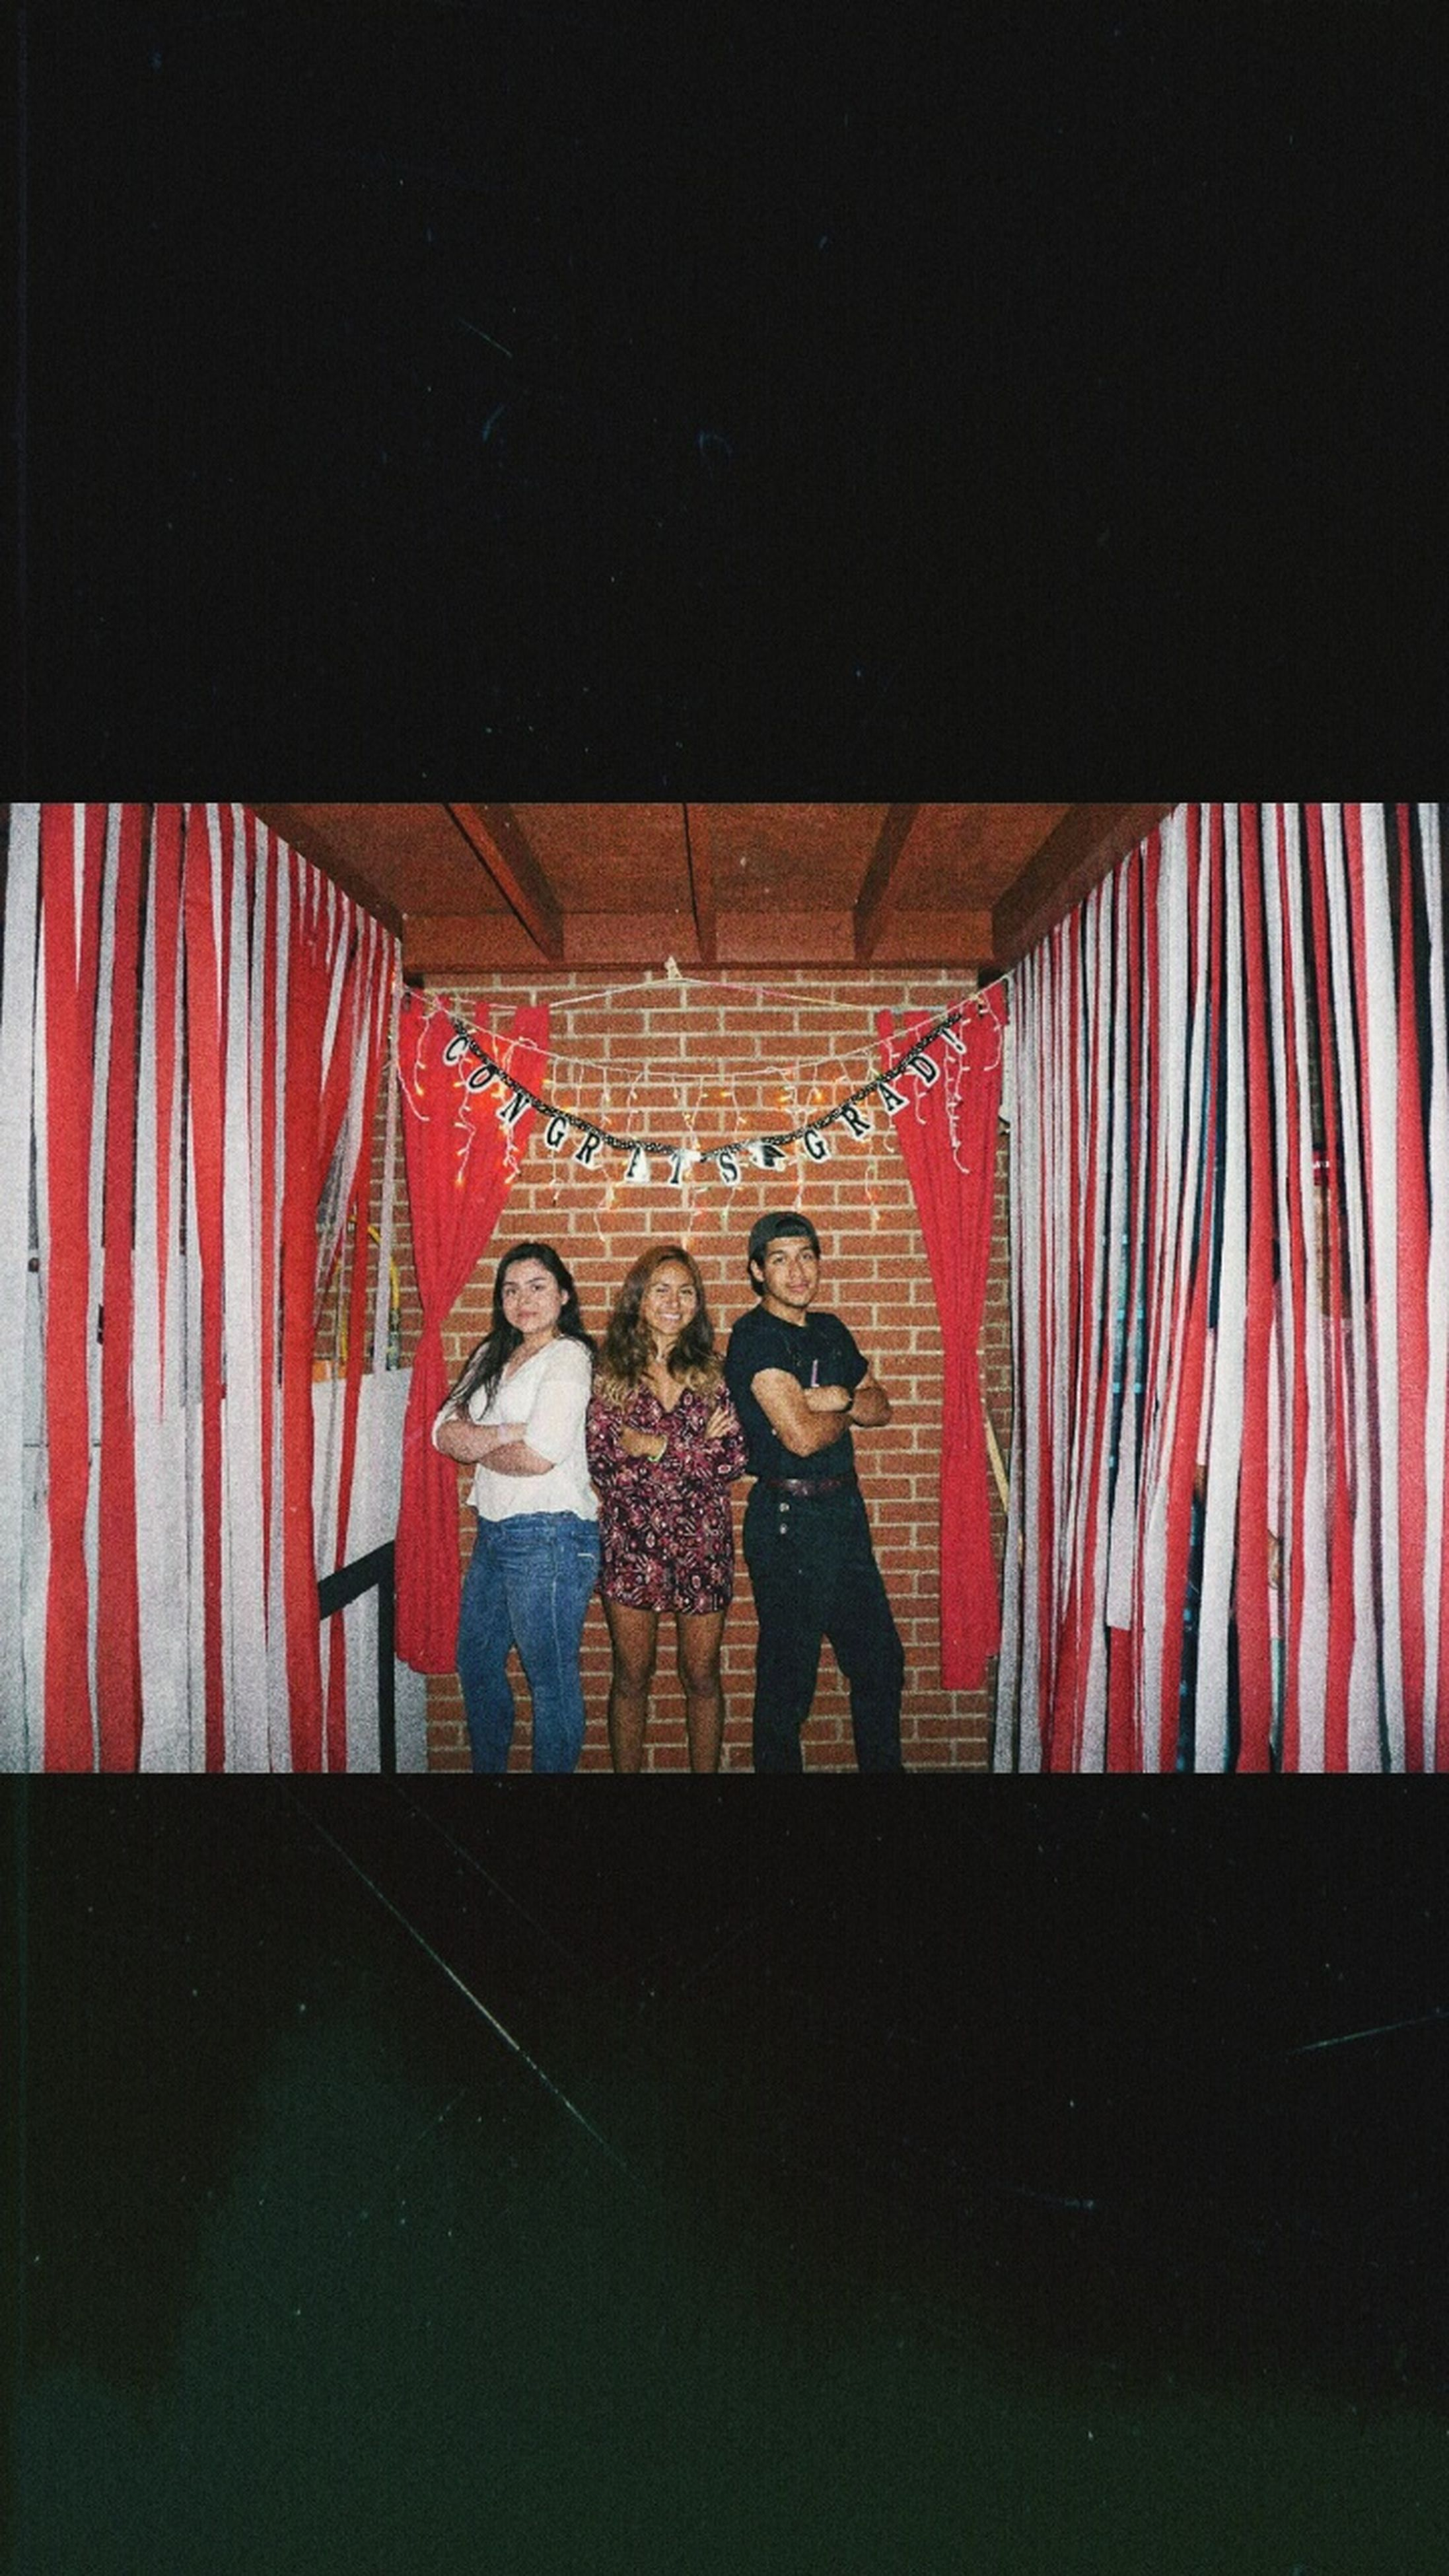 full length, real people, young women, leisure activity, standing, curtain, togetherness, celebration, young adult, indoors, lifestyles, women, night, bonding, friendship, two people, hanging, illuminated, men, adult, people